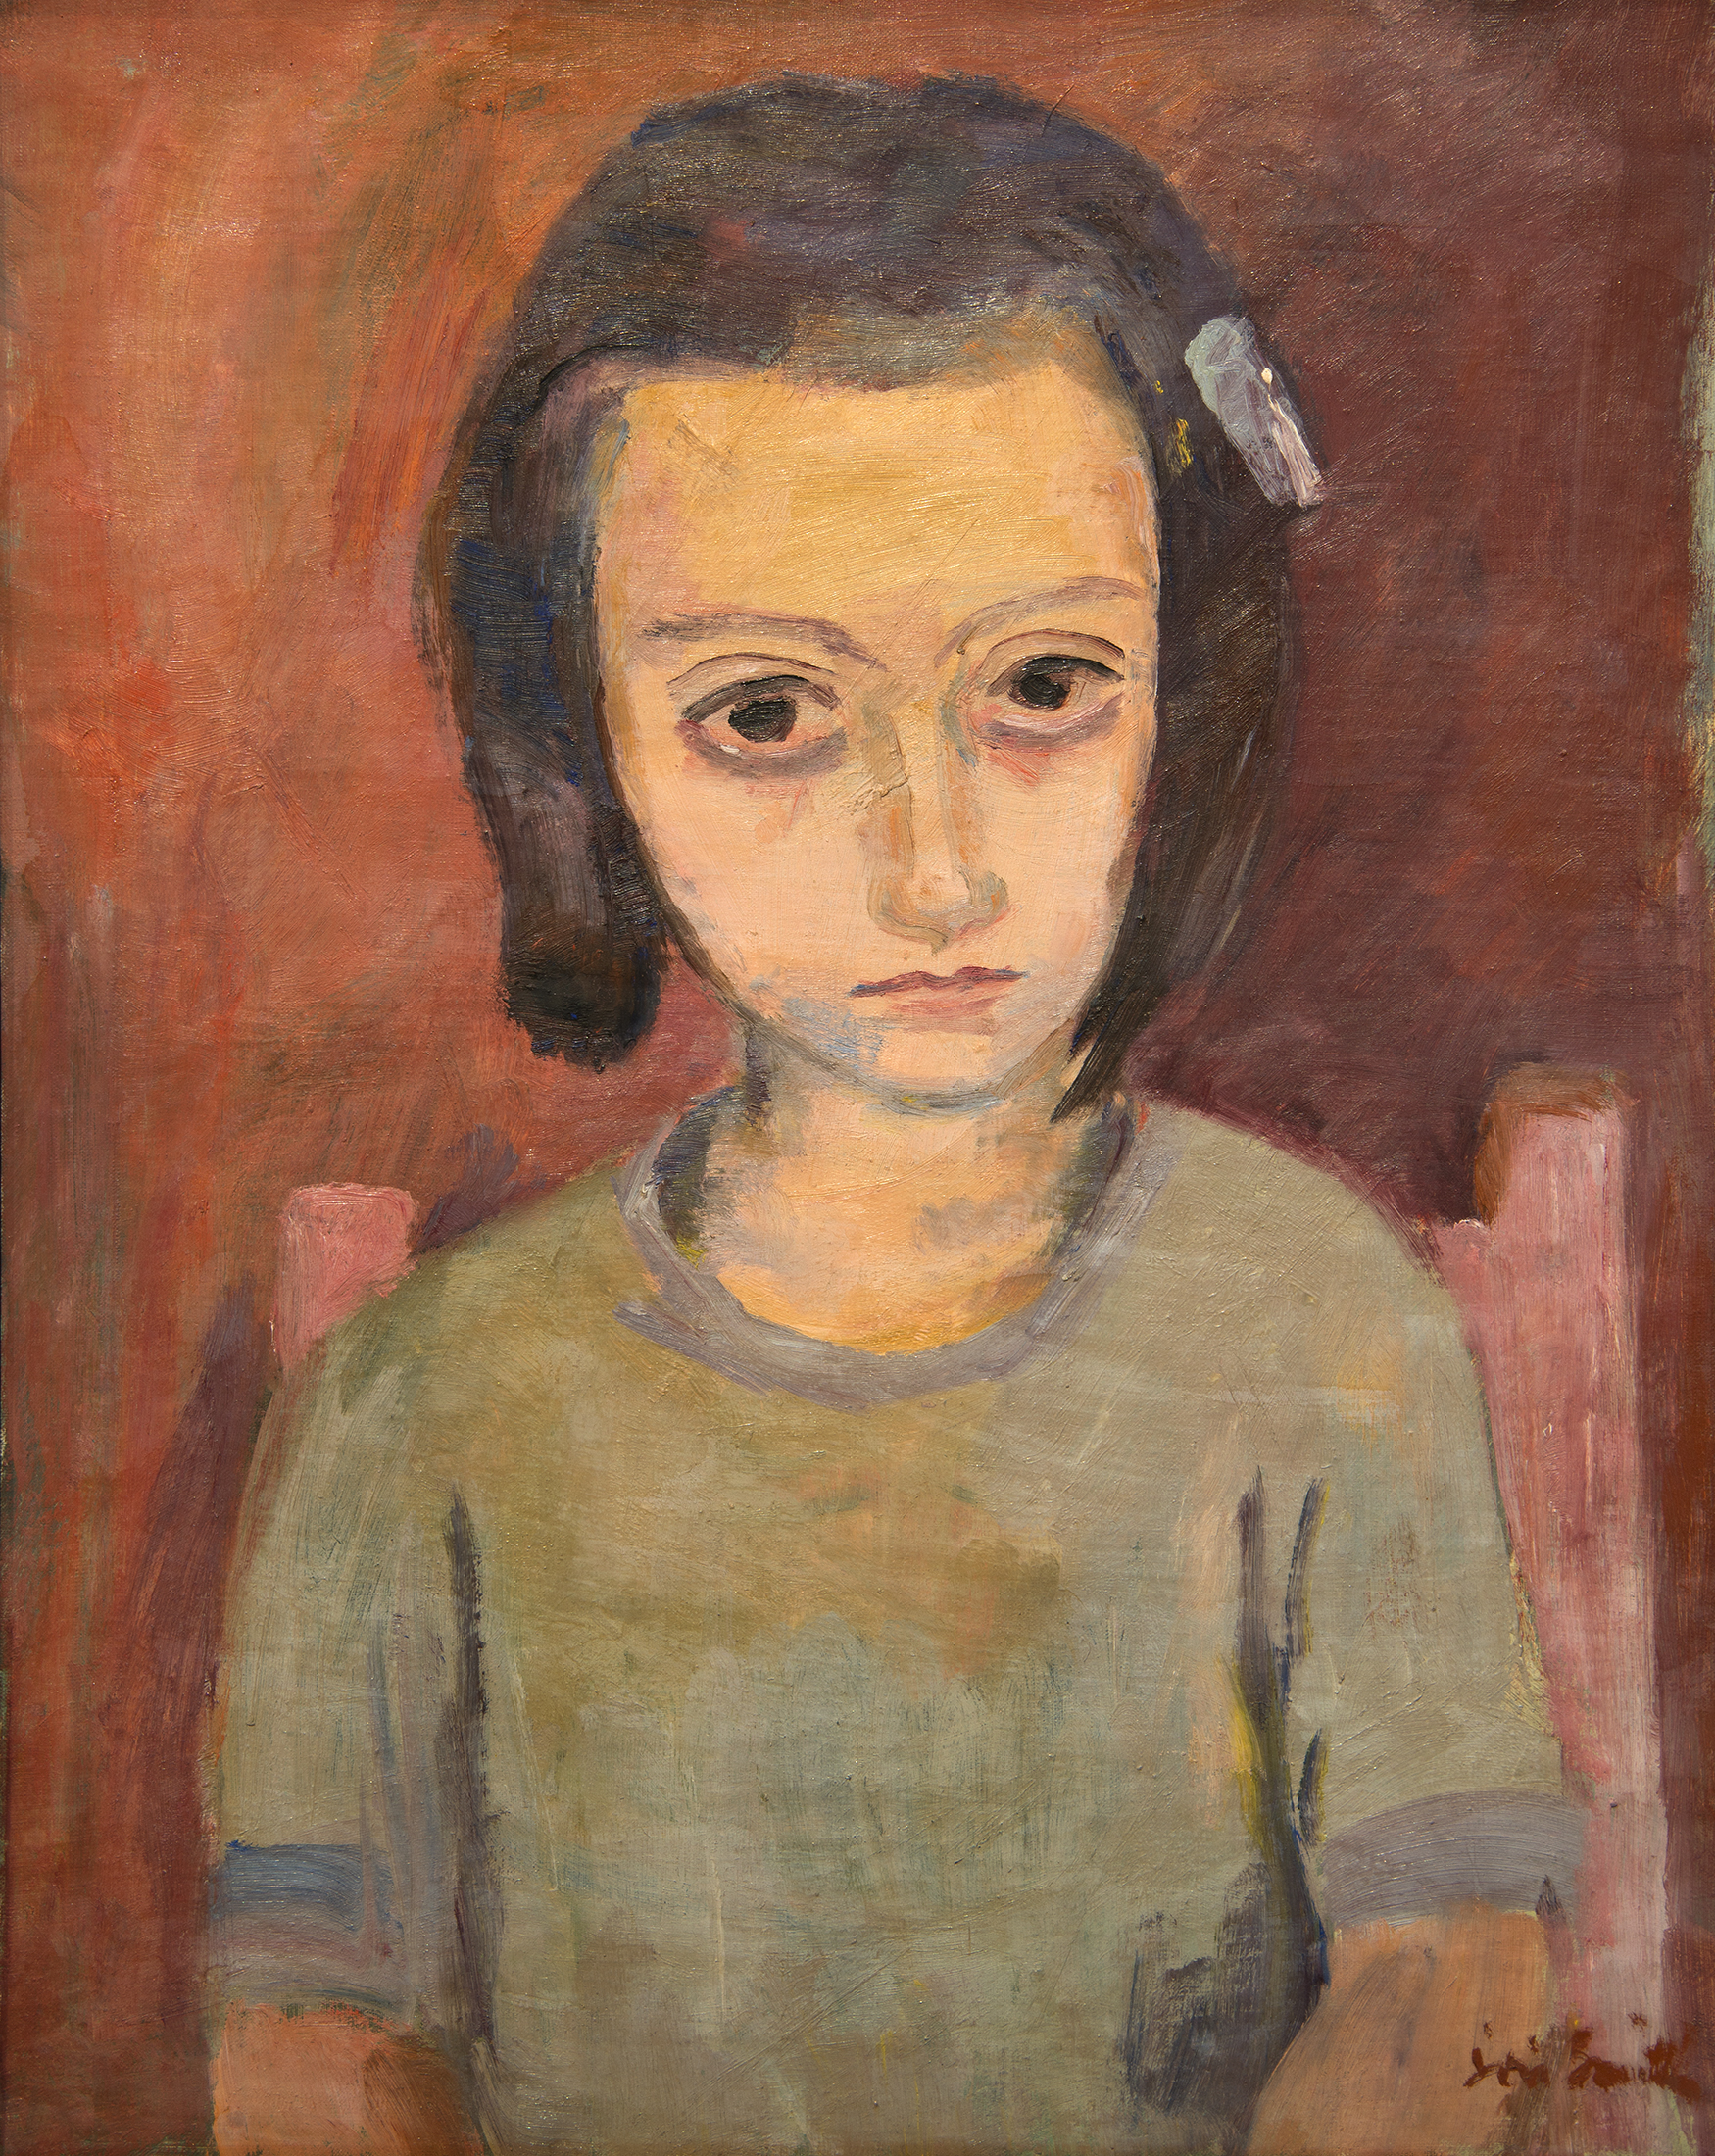 A sad-eyed little girl is seated on a chair, facing forward. Except for the dark brown of the child's bobbed hair and large eyes, the painting is almost monochromatic, in tones of blue, pink and mauve.